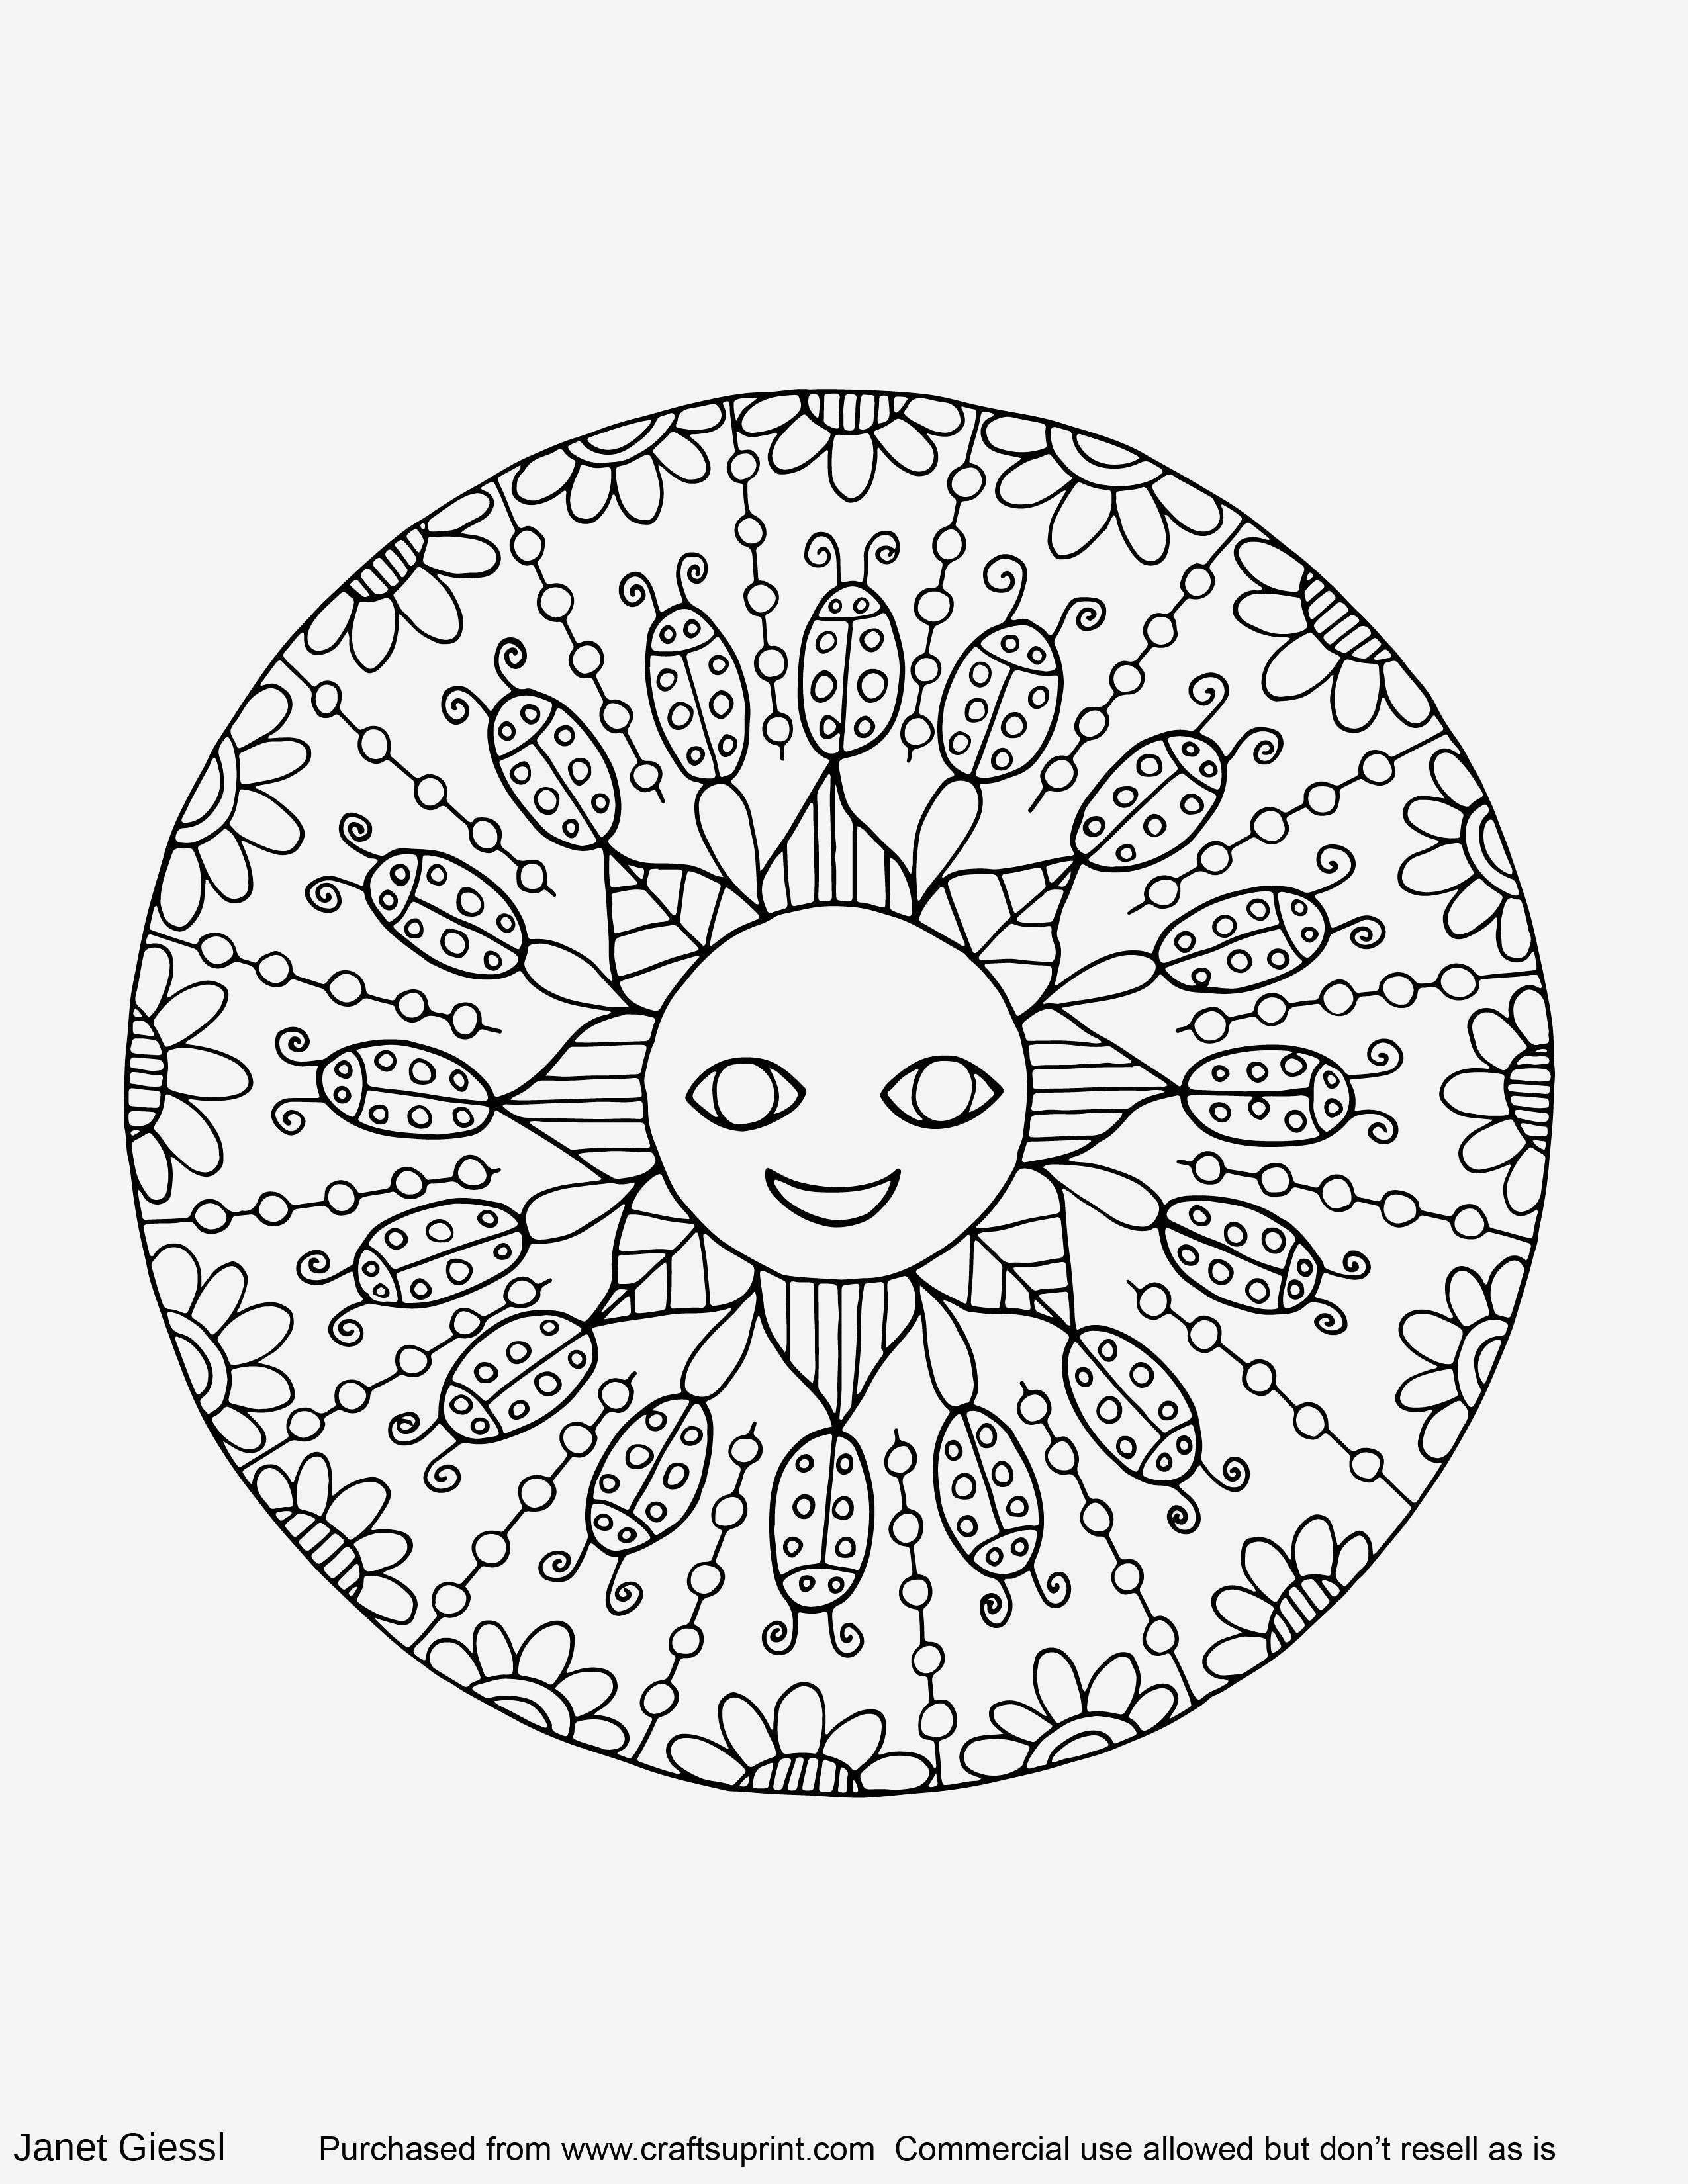 Parrot Coloring Pages Www Free Coloring Pages Elegant Cloud Coloring Page Inspirational